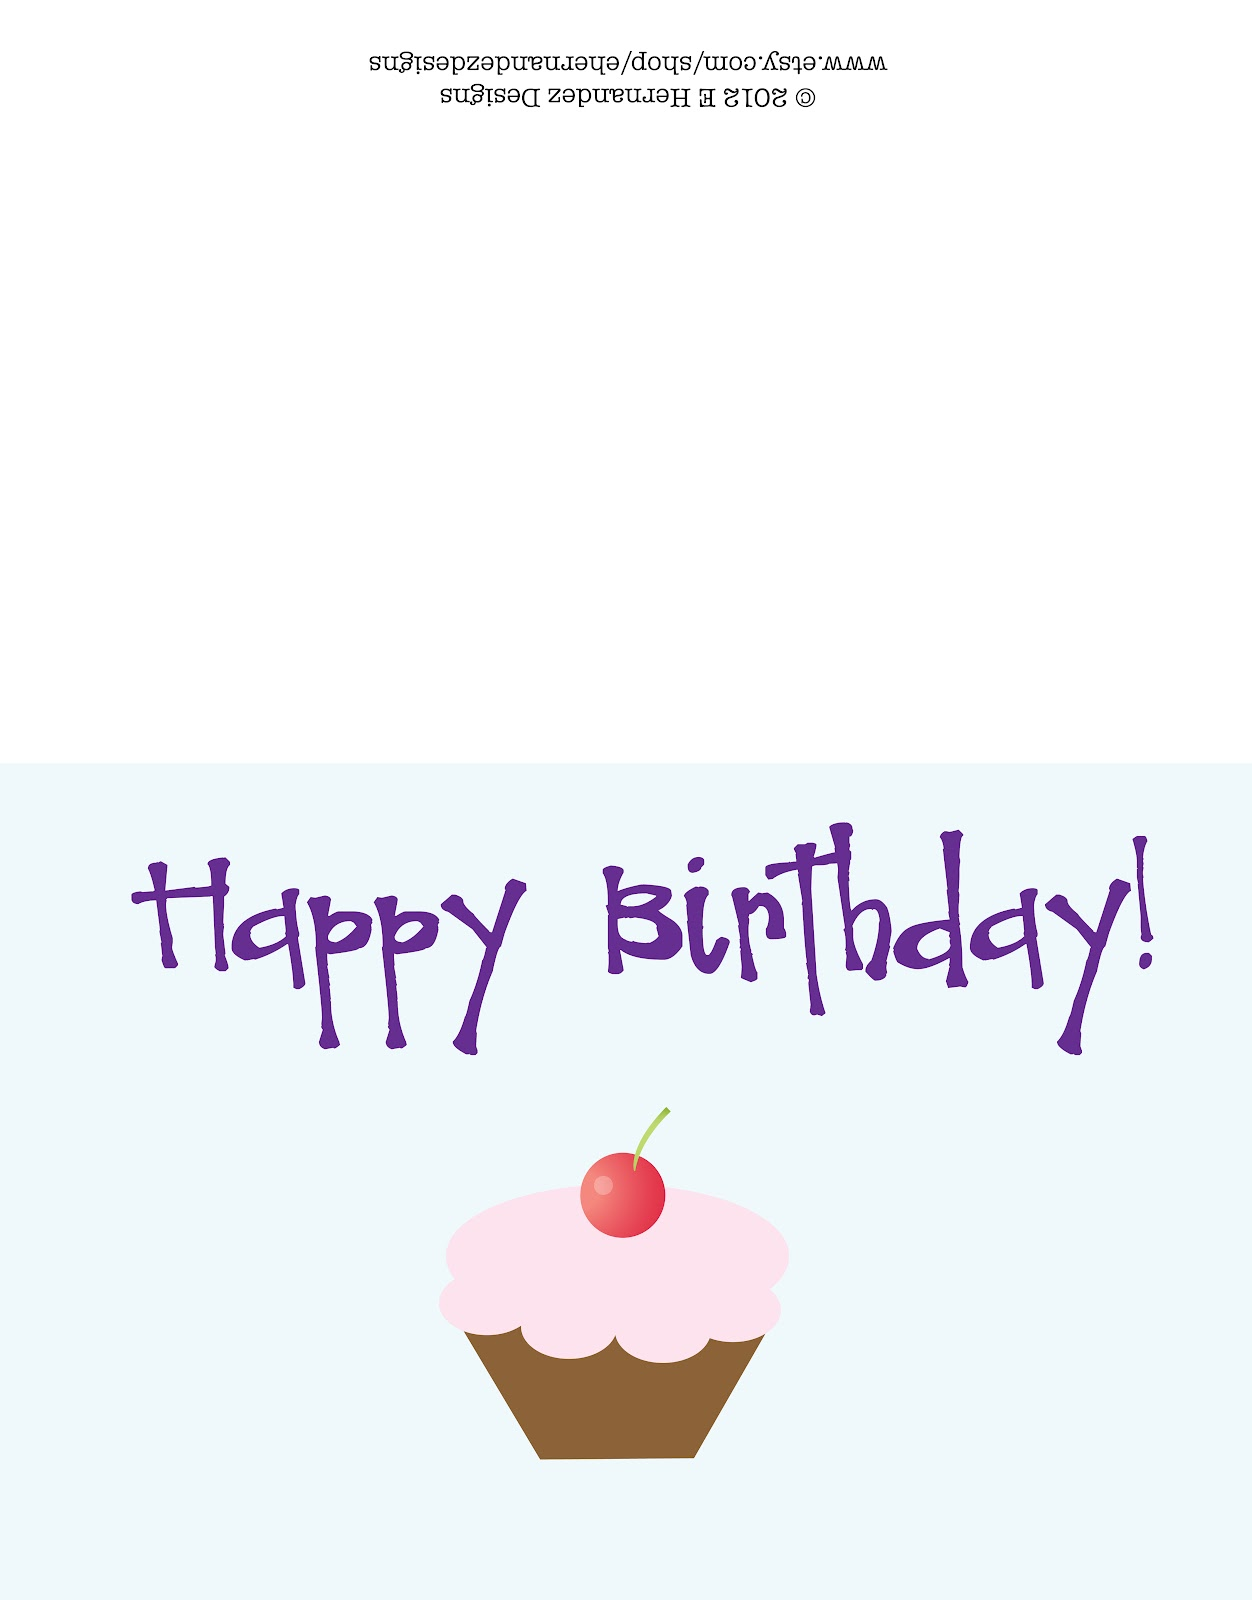 design a birthday card online free printable ; Printable-Free-Birthday-Cards-sending-online-save-for-computer-edit-and-easy-design-card-to-print-or-post-time-line-facebook-and-more